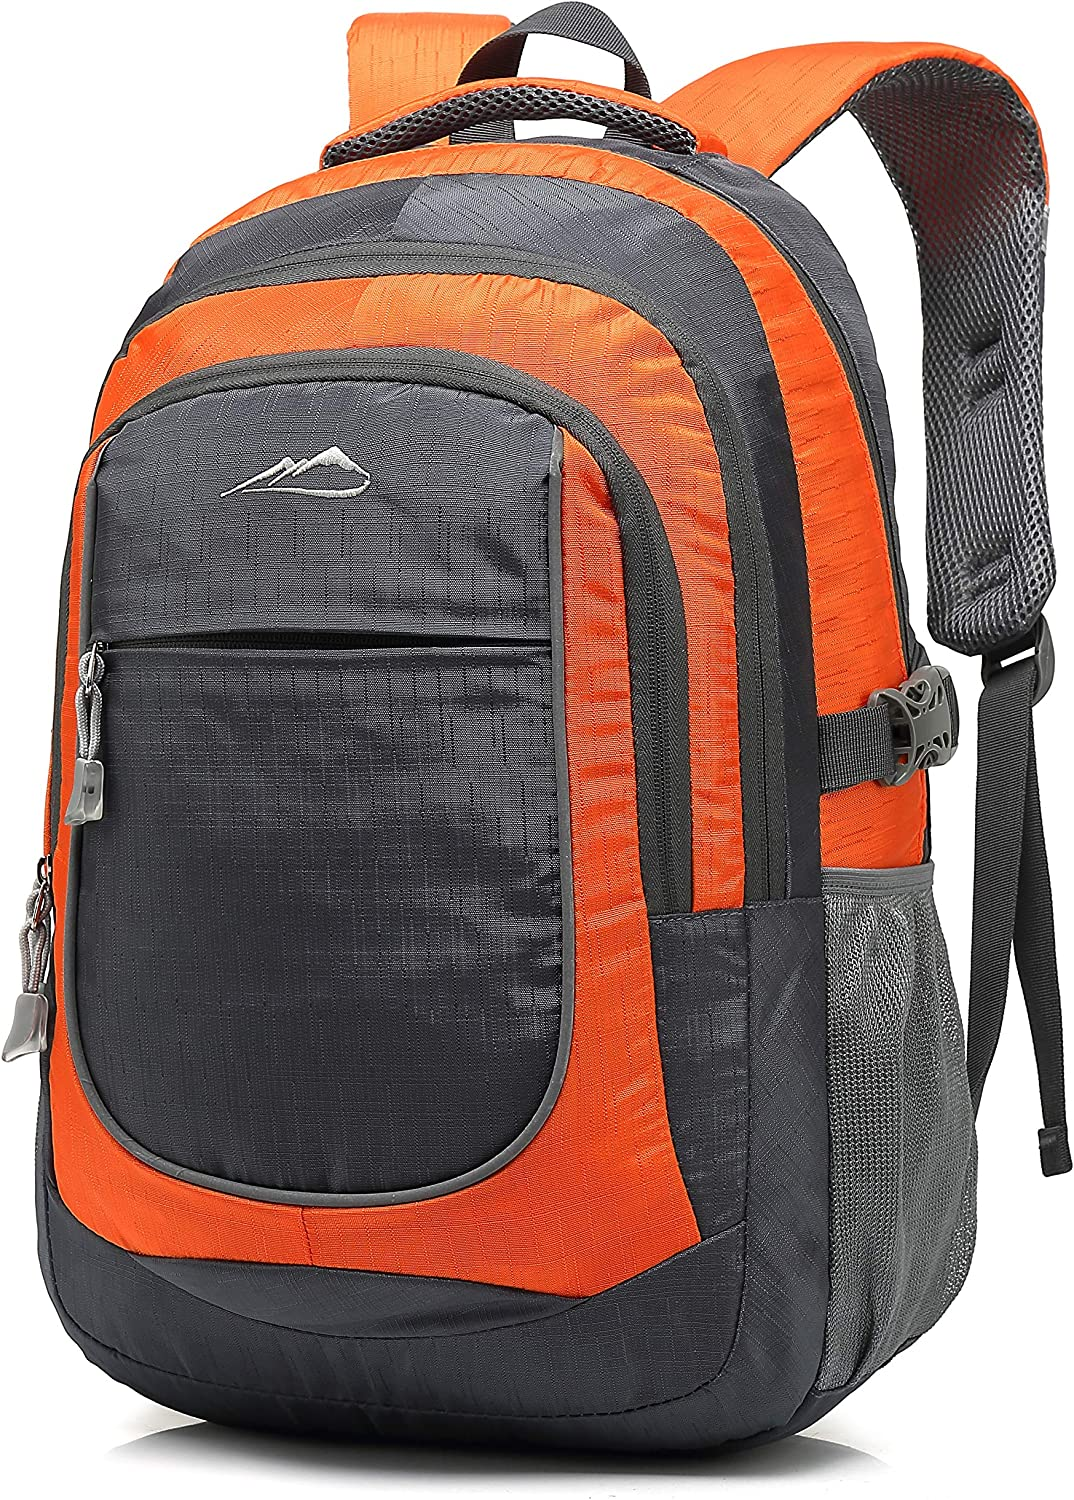 Backpack Bookbag for School College Student Travel Business Hiking with 15.6 Inch Laptop Compartment Night Light Reflective (Orange)